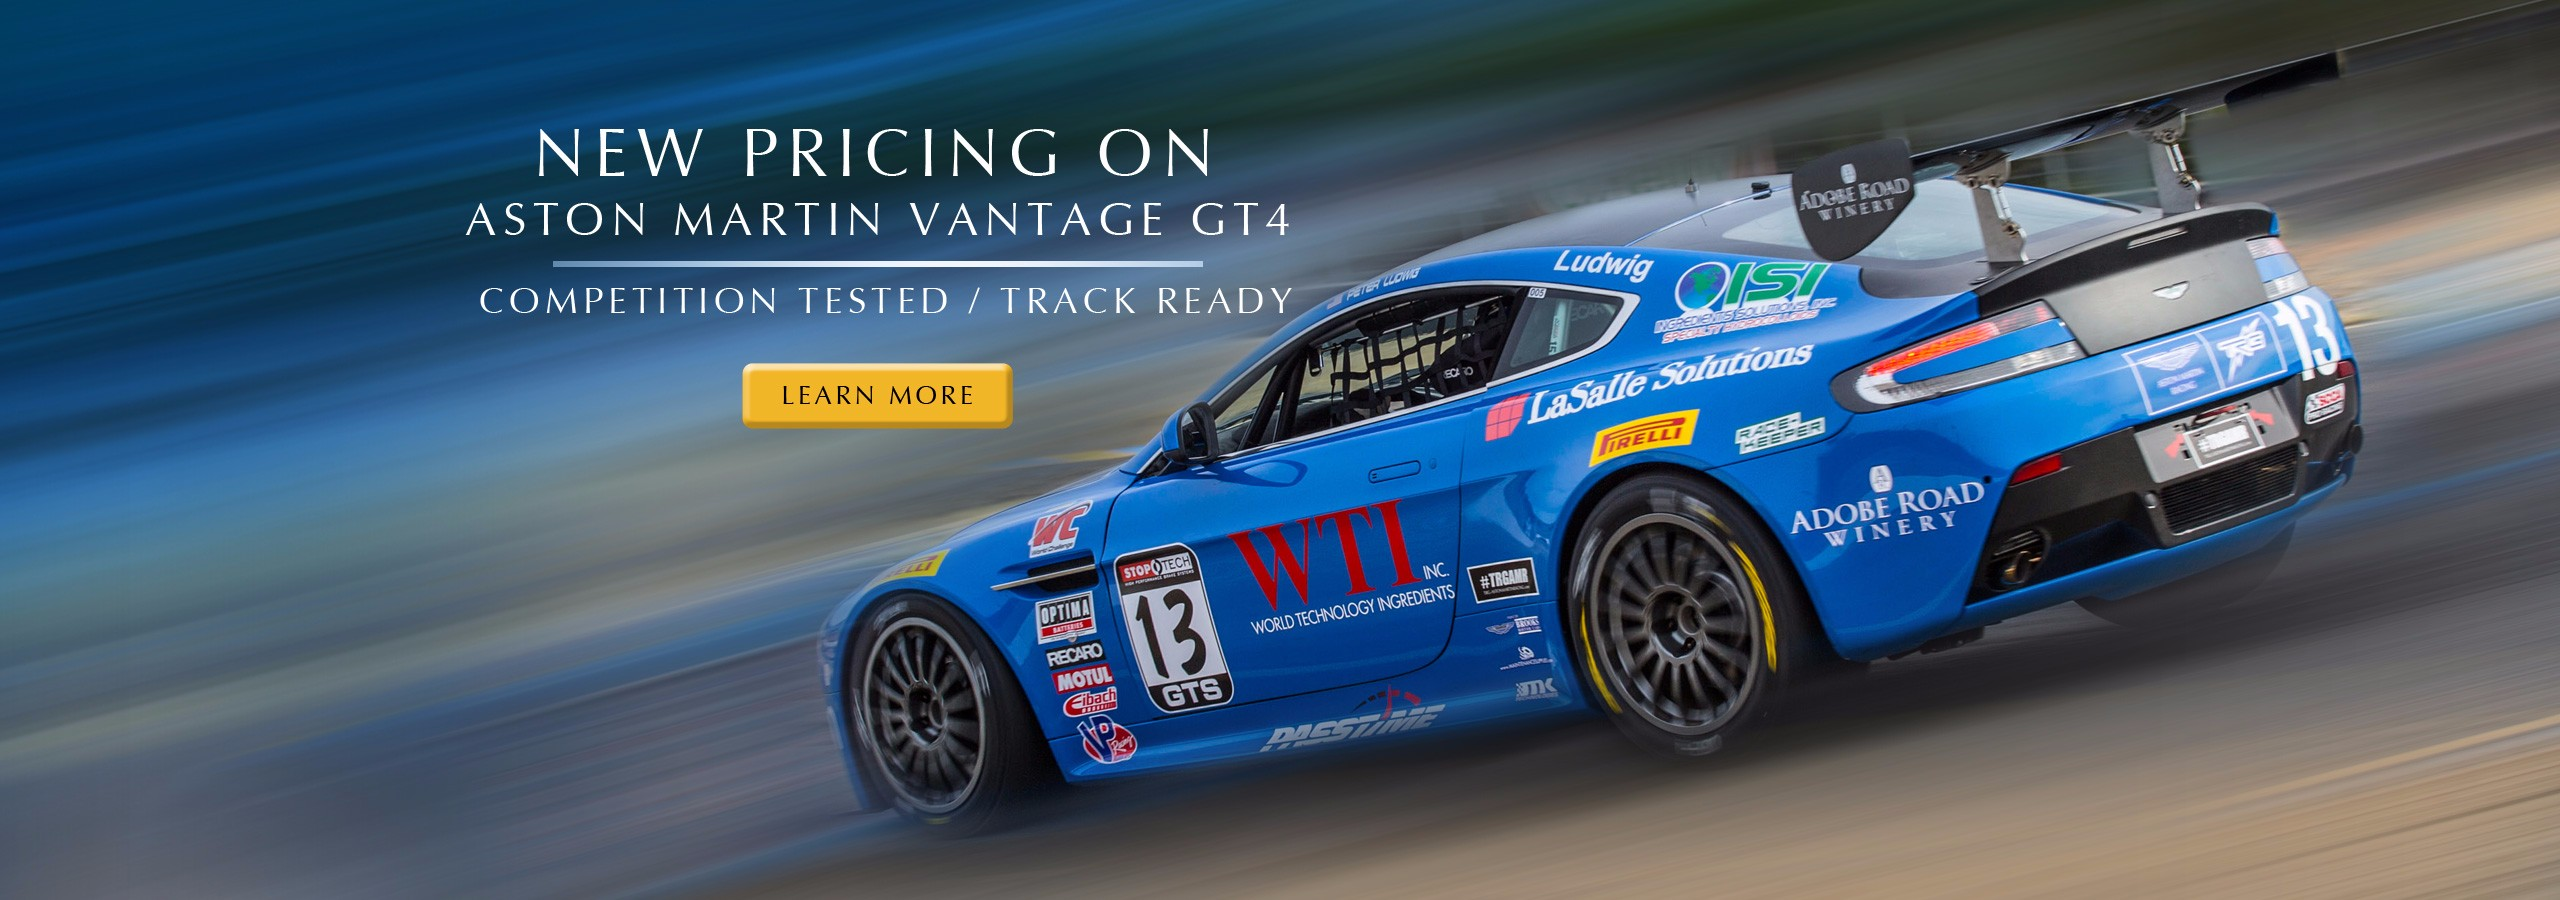 Pre-owned race cars and high-performance race parts.